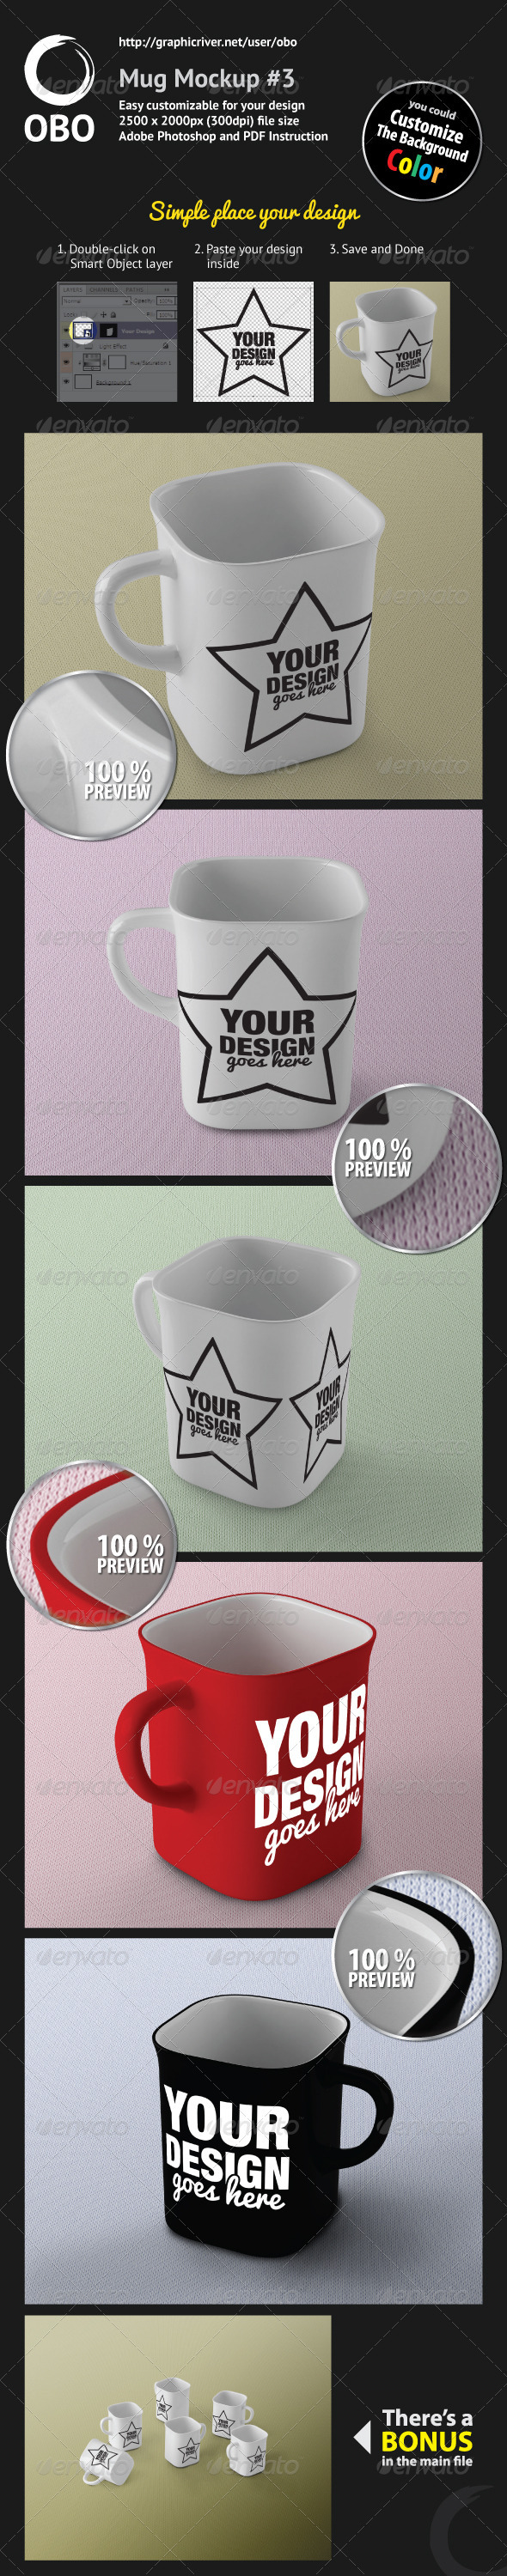 Mug Mockup #3 - Food and Drink Packaging